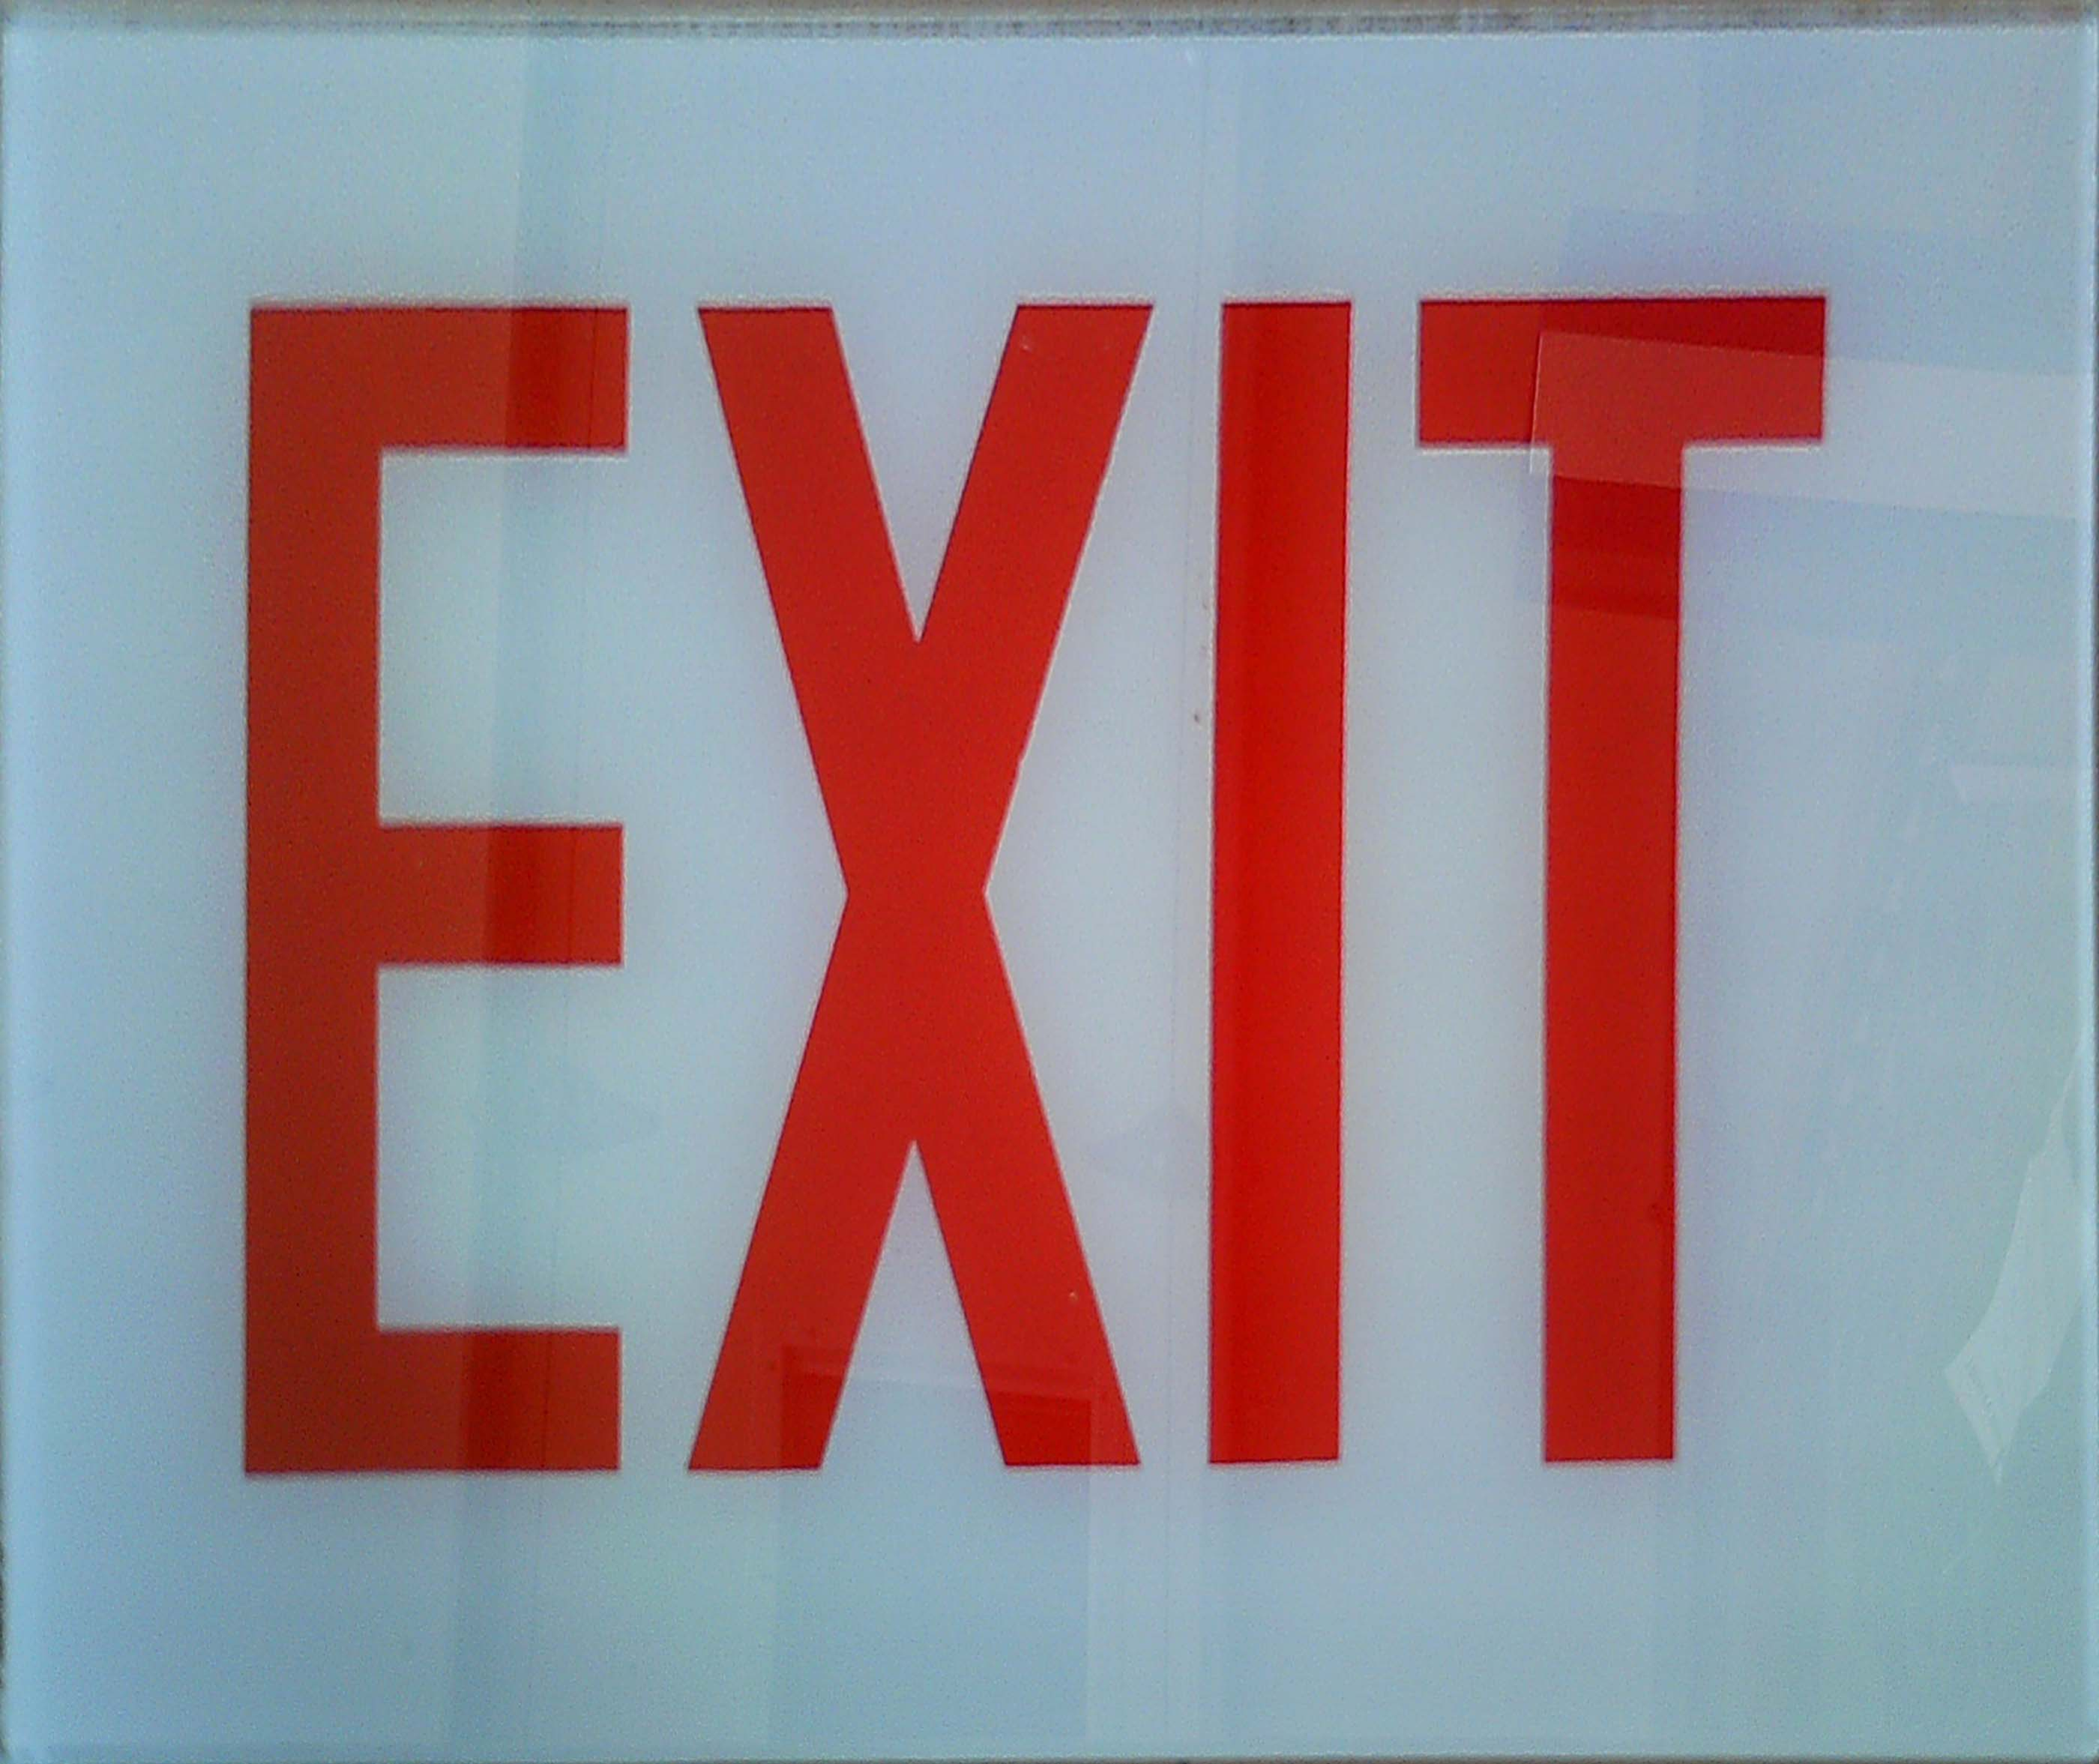 Image logo for Exit Sign - Glass Replacement Sign: EXIT (No Arrow)